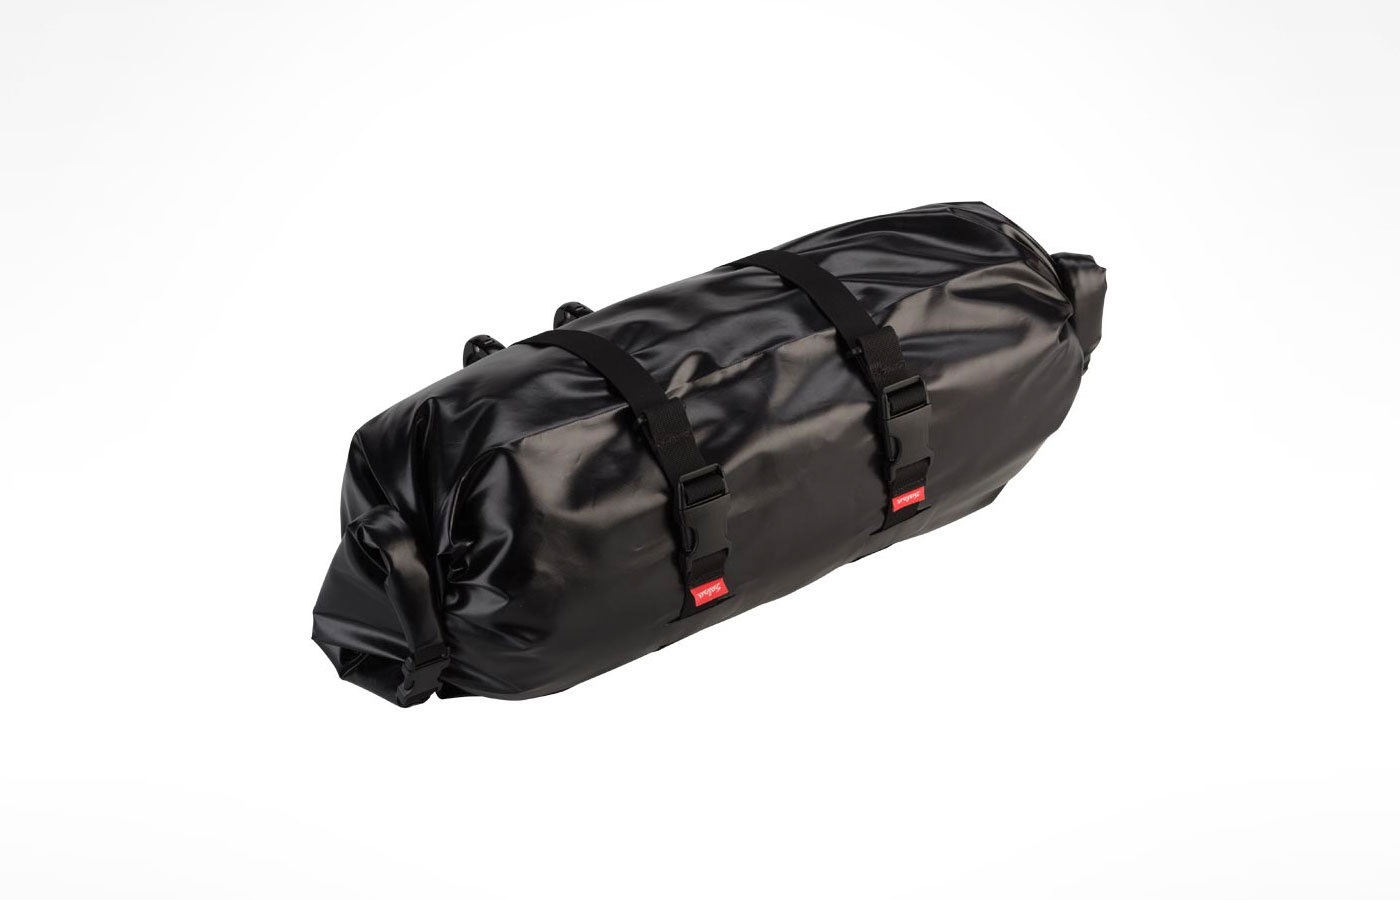 Salsa EXP Anything Cradle with 15l Bag and Straps